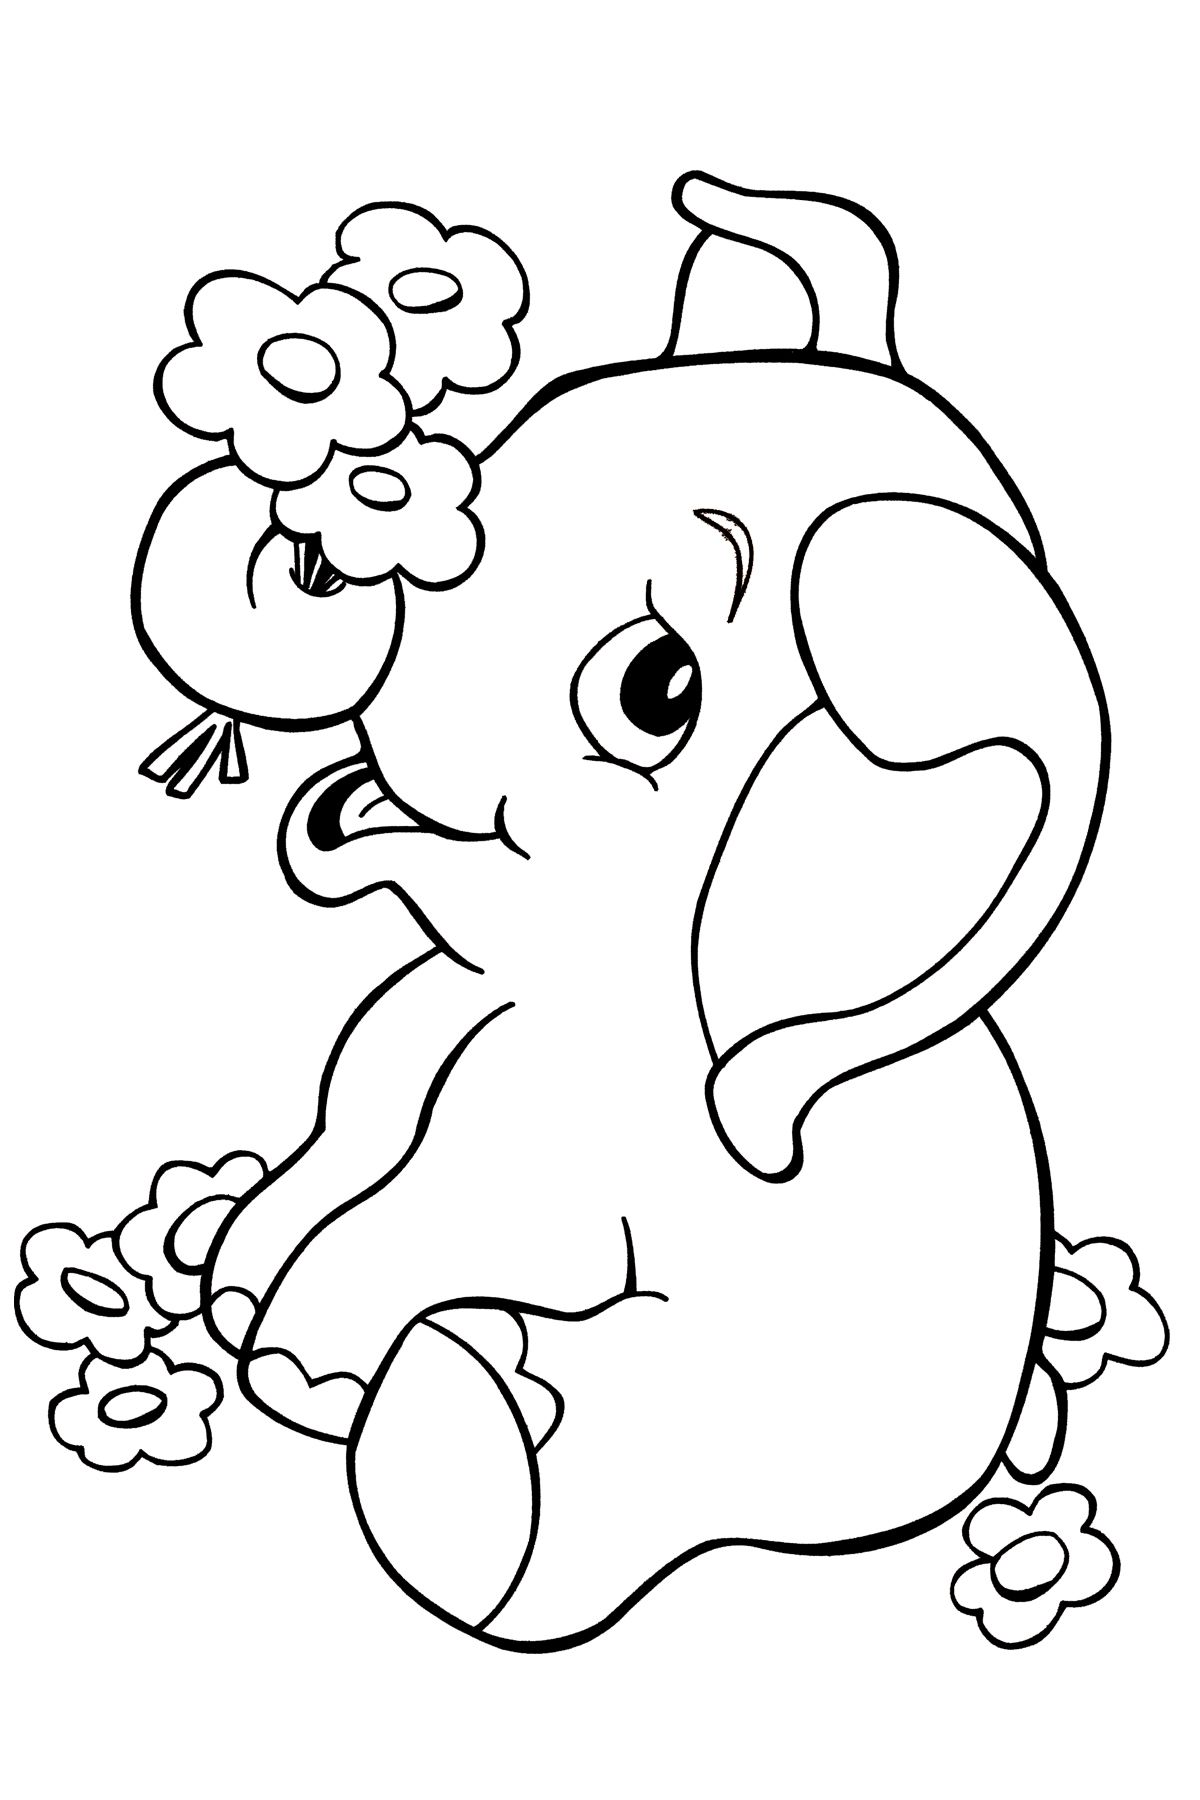 beautiful elephant in the jungle coloring pages erauprescott kids stuff jungle coloring. Black Bedroom Furniture Sets. Home Design Ideas